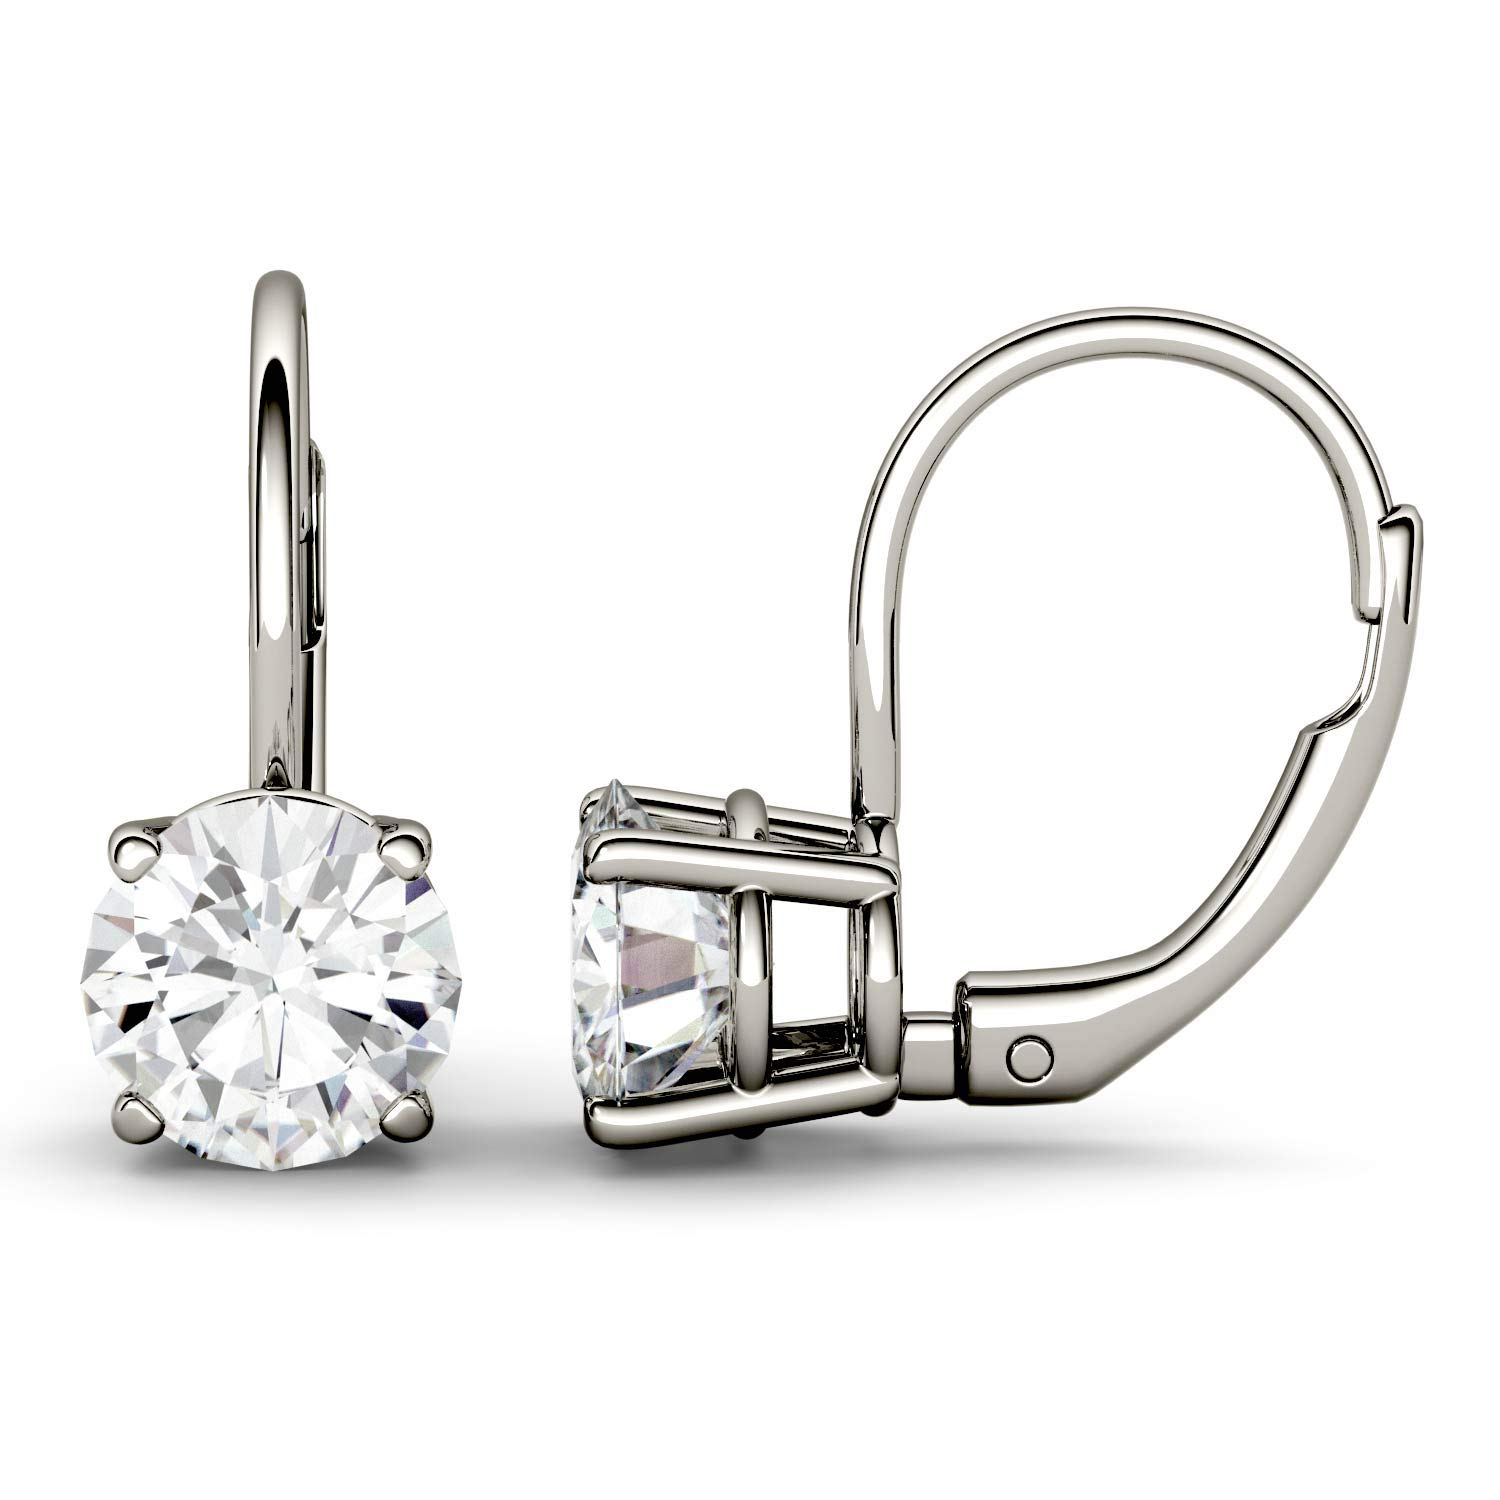 14K White Gold Moissanite by Charles & Colvard 6.5mm Round Leverback Earrings, 2.00cttw DEW